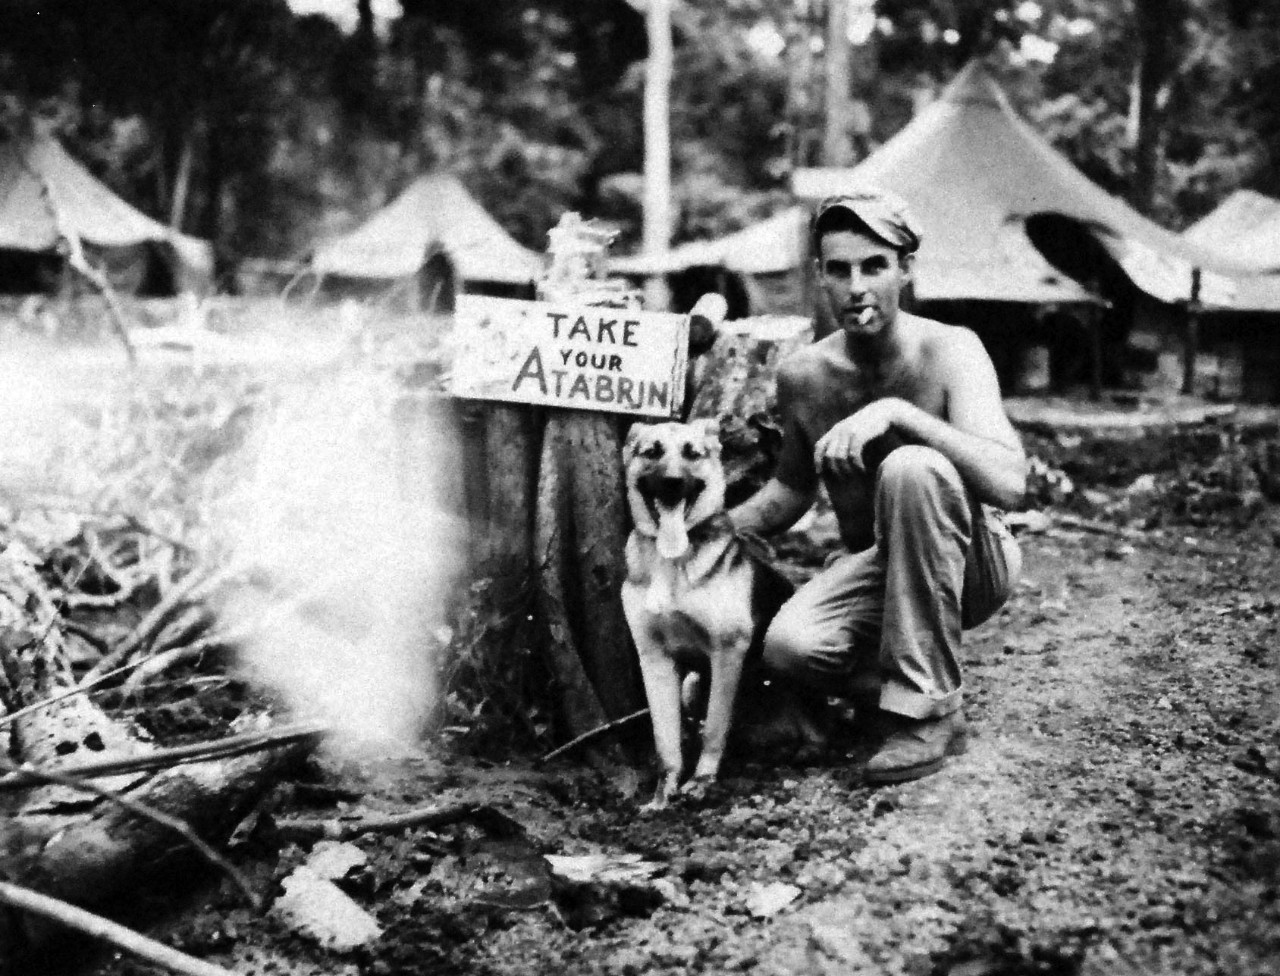 "127-GW-966-77356:  Battle of Cape Gloucester, New Britain, December 1943-January 1944.   ""Japanese sentry who joined Marines.""   ""Nipper,"" a Japanese sentry dog, who voluntarily joined the Marines on Cape Glouchester, poses with Marine Master Technical Sergeant George E. Ausman, who had been a Marine since 1926.   Photographed by Sergeant G.F. Koepplinger, 10 February 1944.   Official U.S. Marine Corps Photograph, now in the collections of the National Archives.   (2014/7/9)."